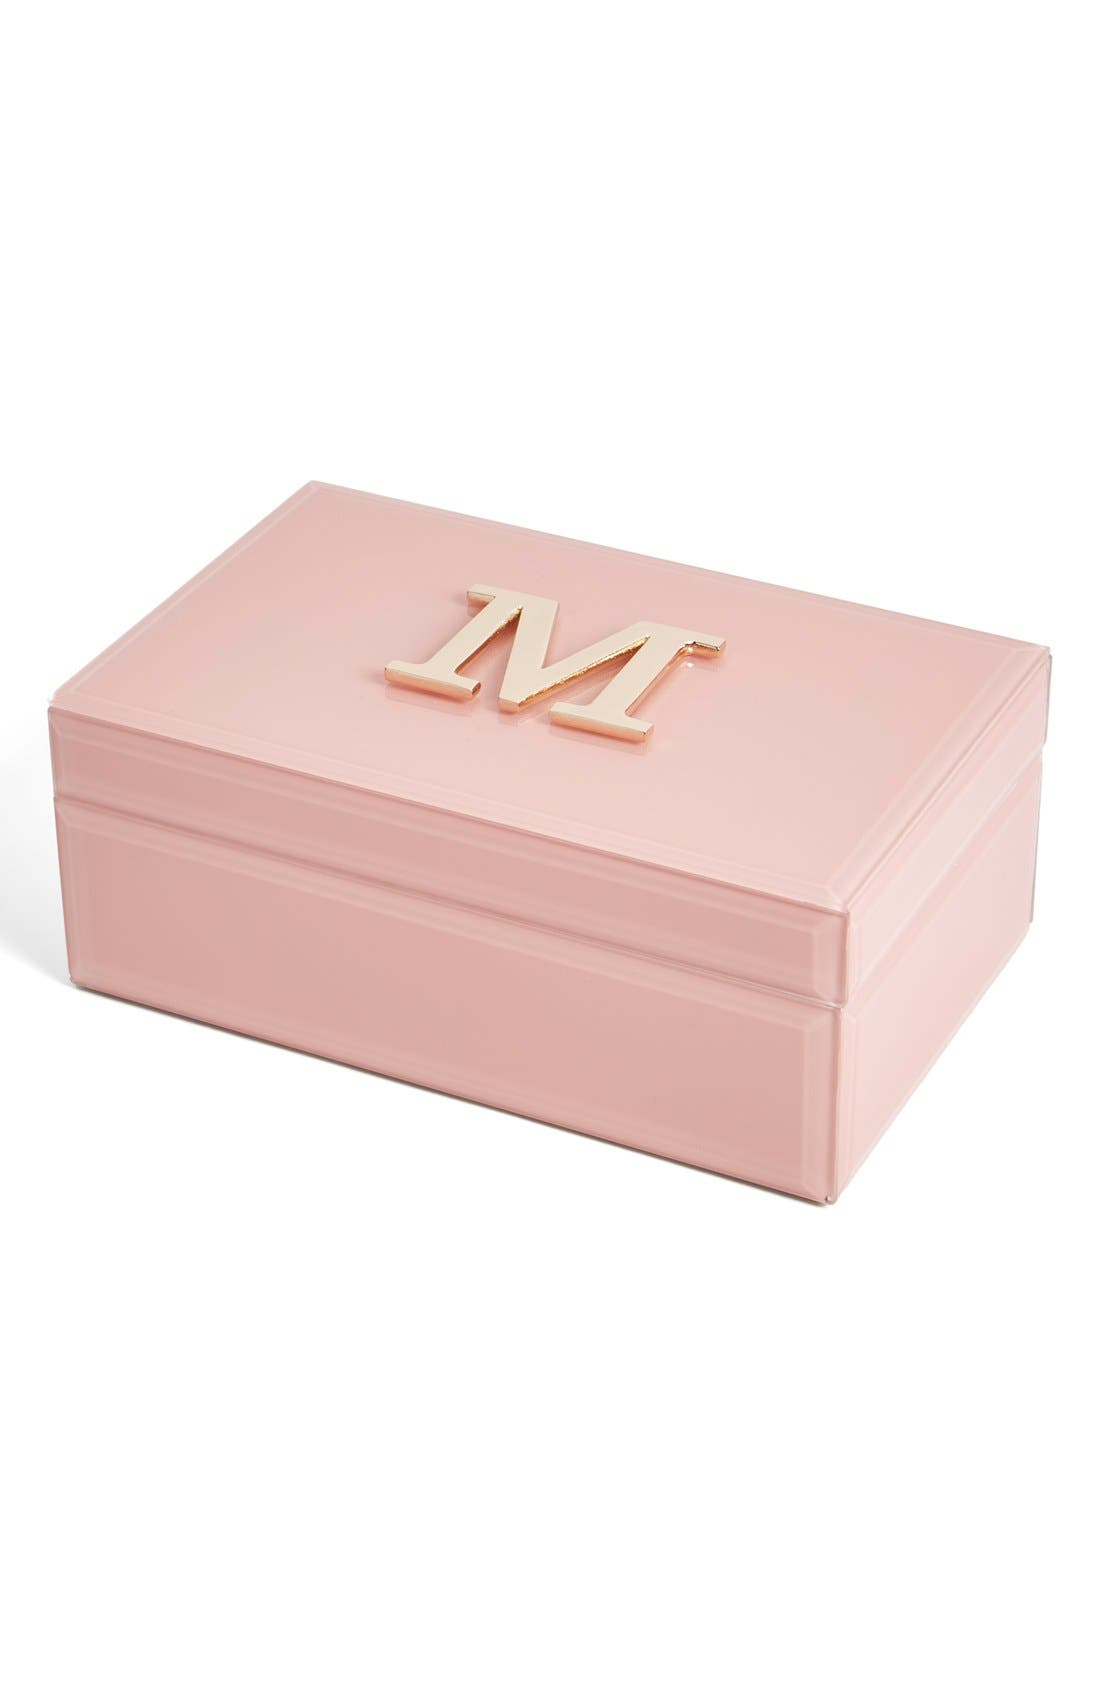 Monogram Jewelry Box,                         Main,                         color, Rose - M